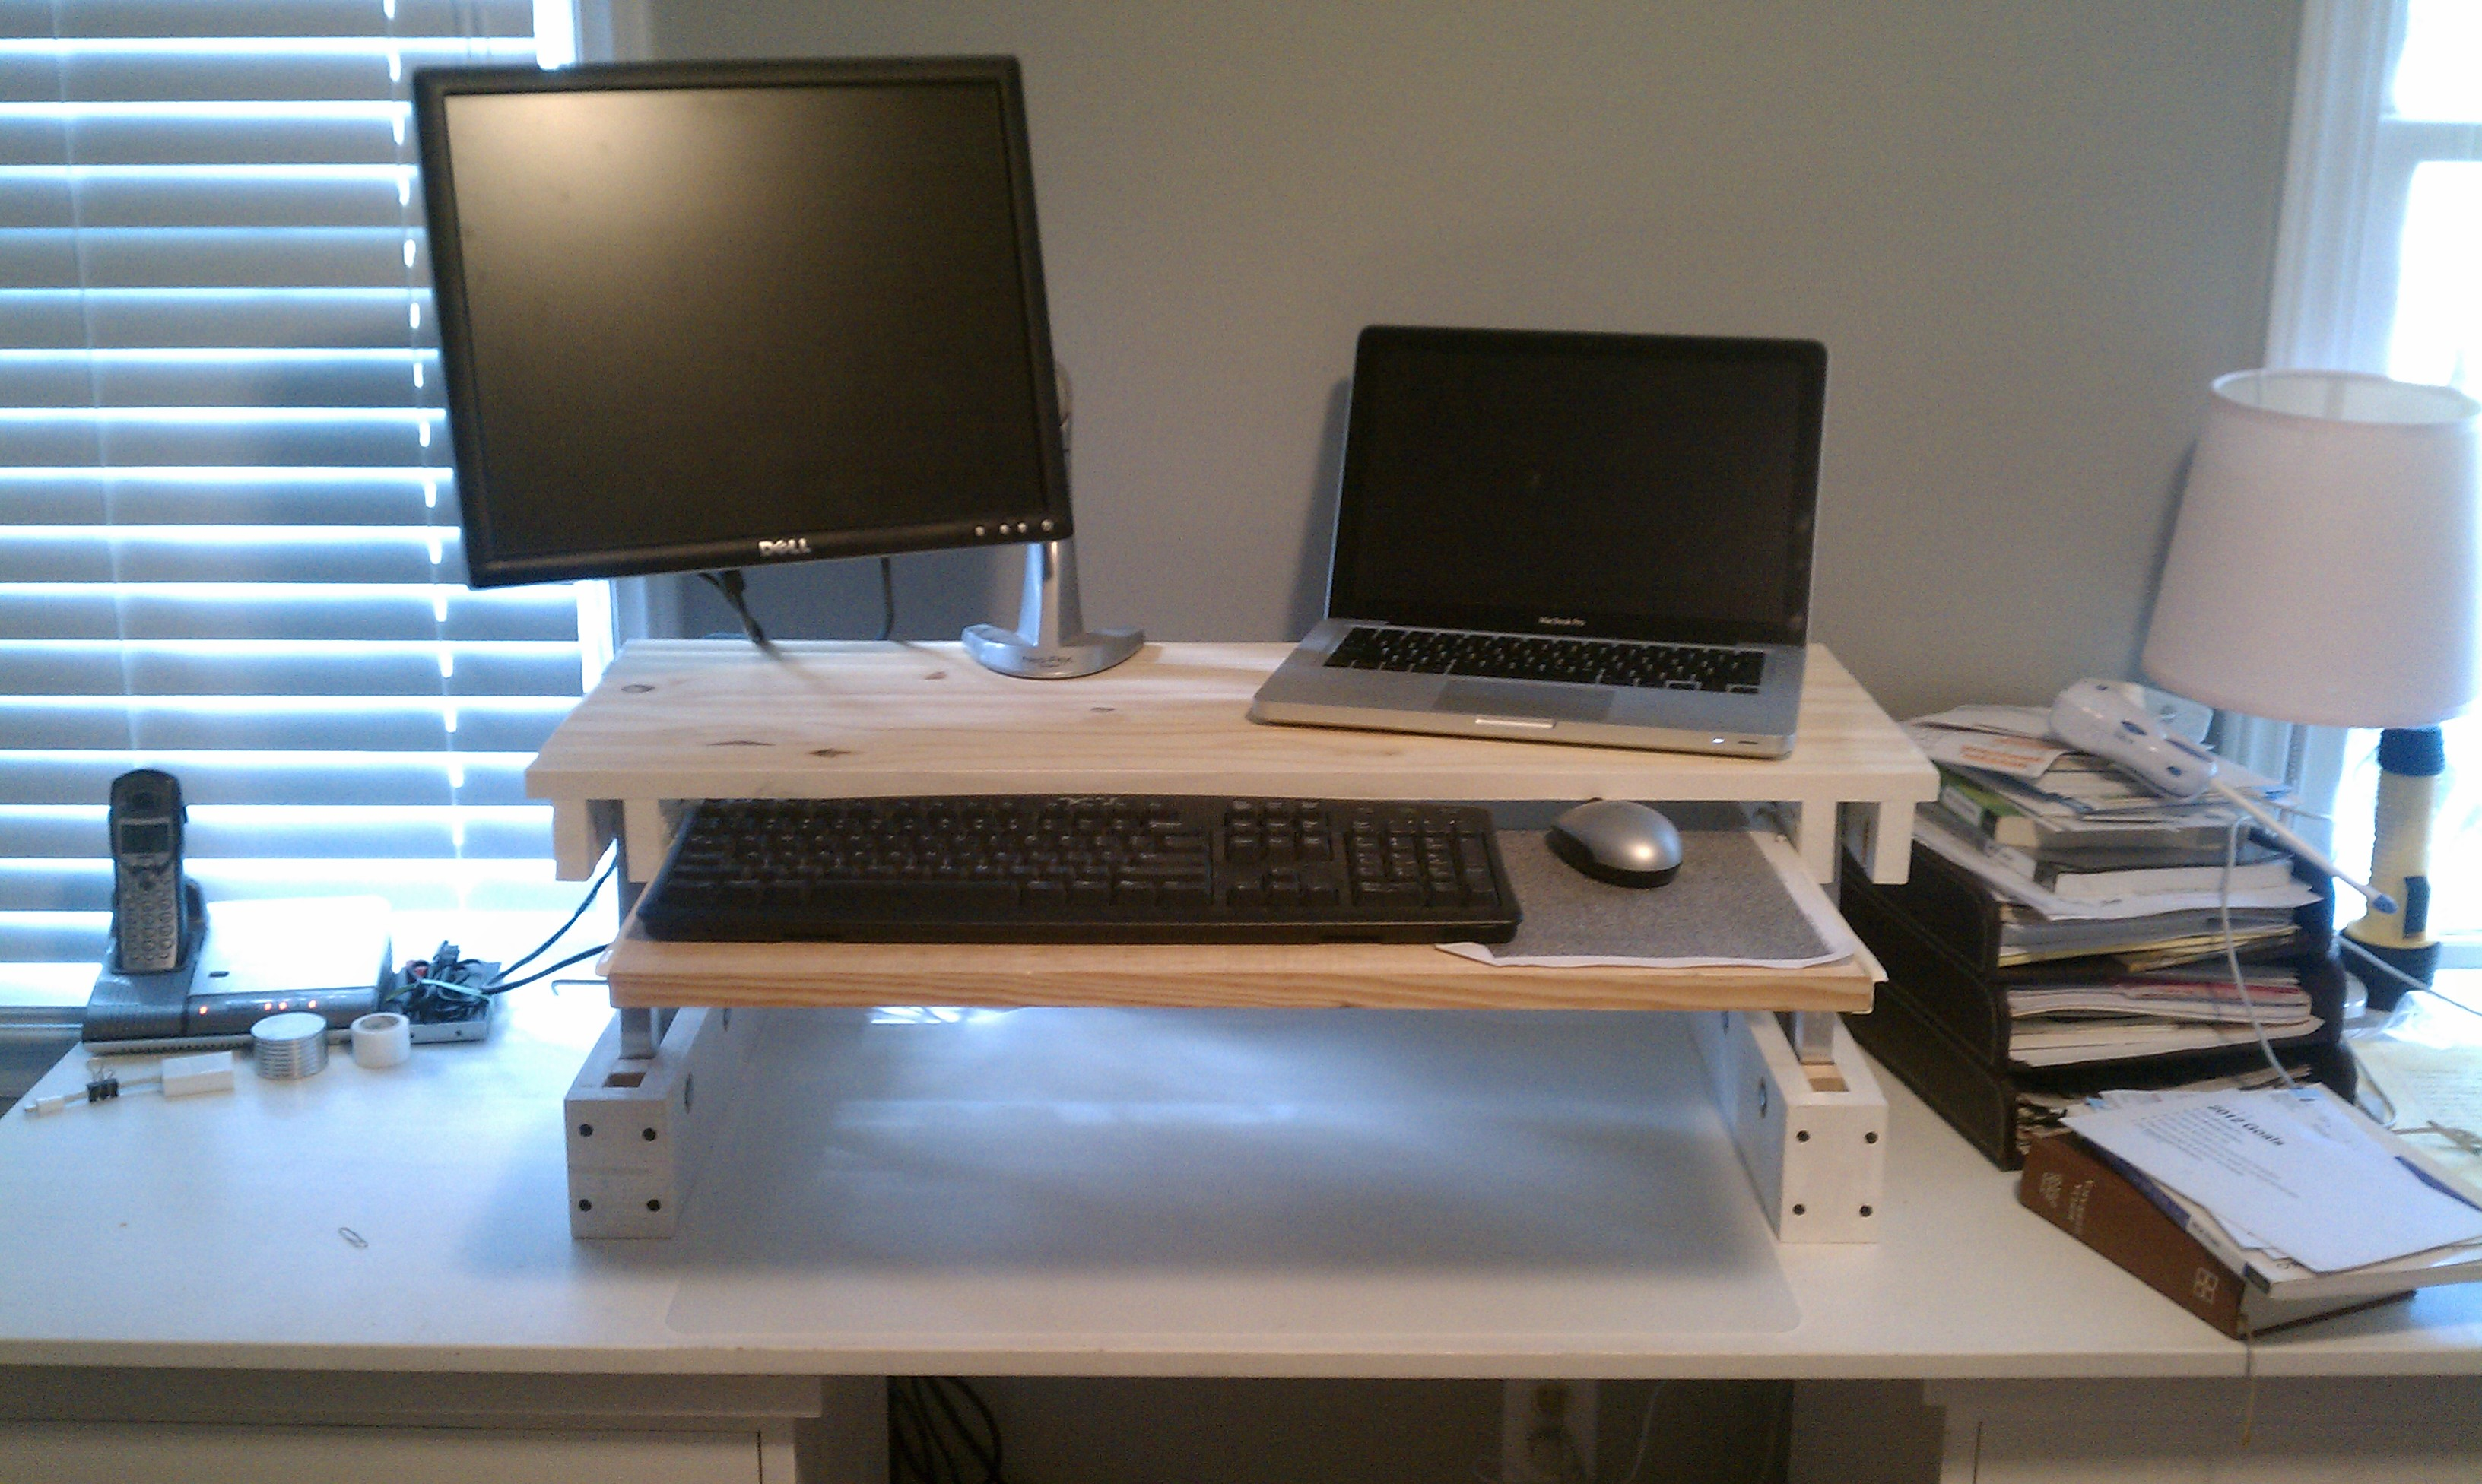 Diy Desktop Standing Desk Diy Adjustable Desk For Under 25 Code Over Easy